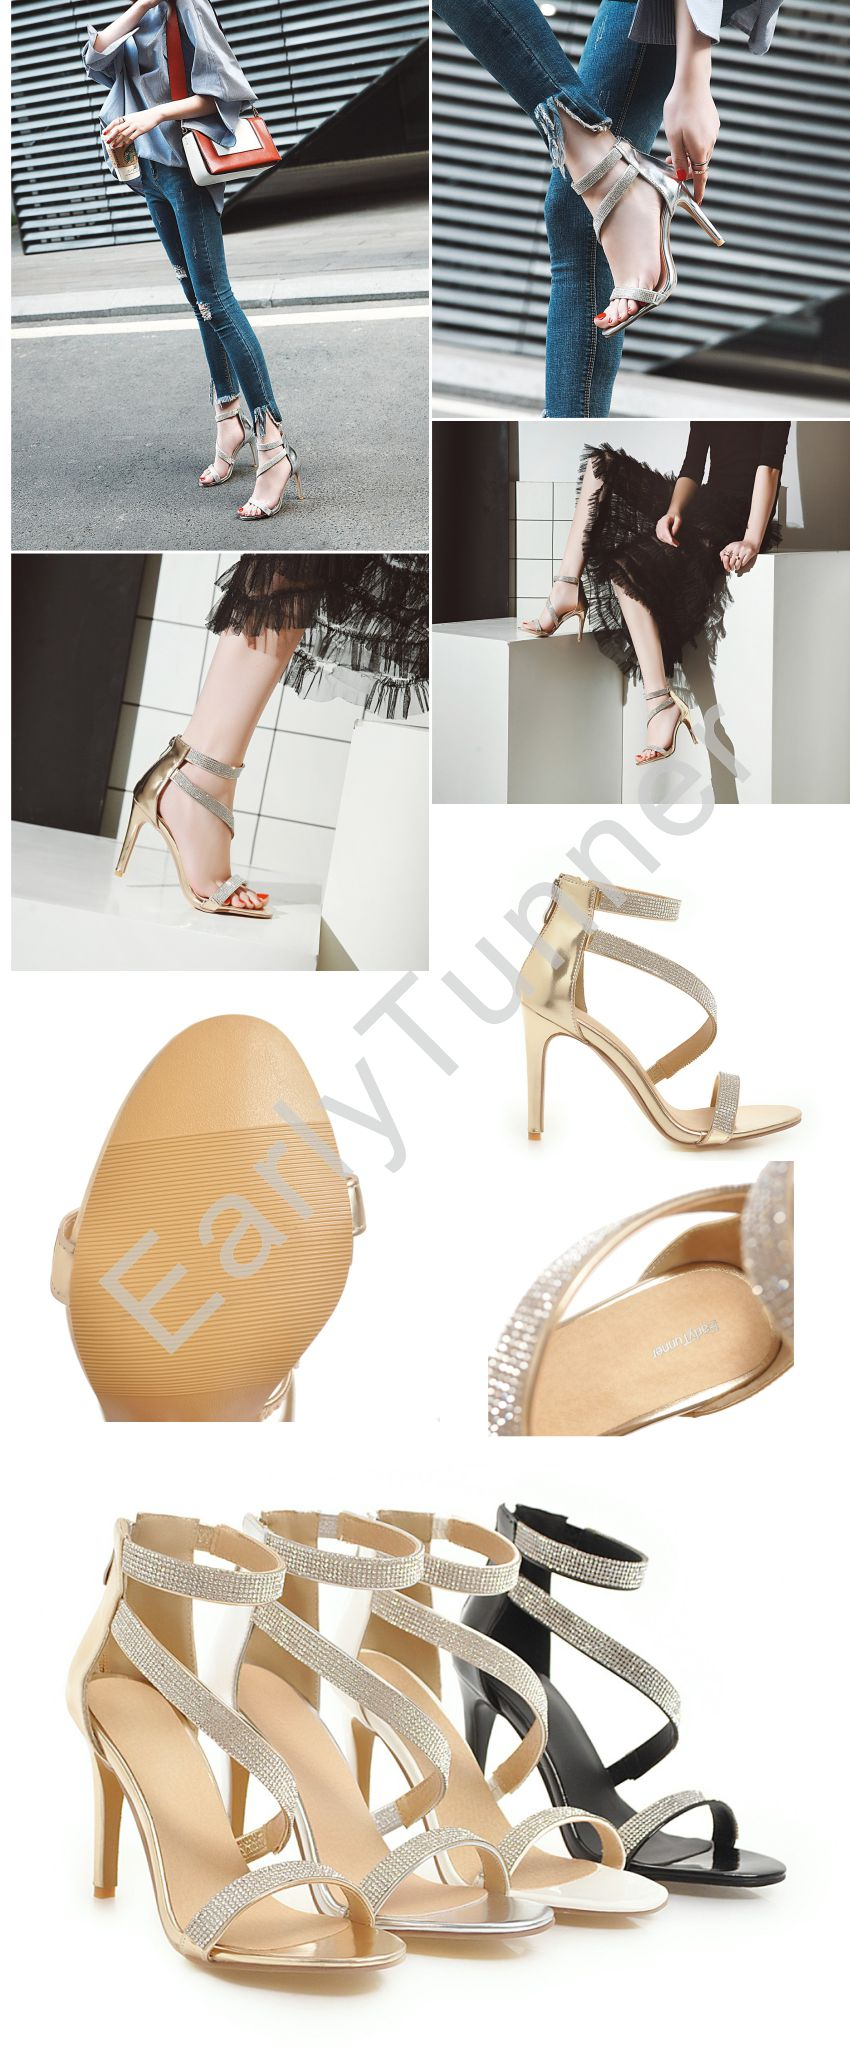 Brand New Summer Glamour Gold Silver Women Bridal Sandals Super High Heels  Sexy Crystal Lady Shoes EH853 Plus Big Size 10 43 c9e3547792e5